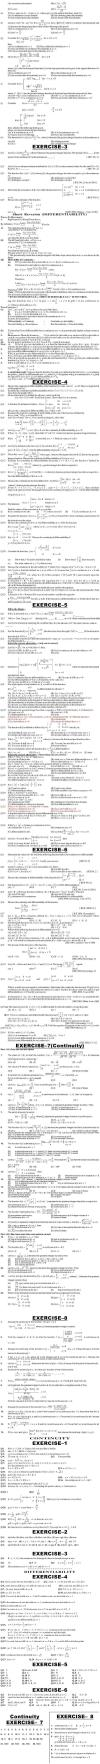 Maths Study Material - Chapter 10